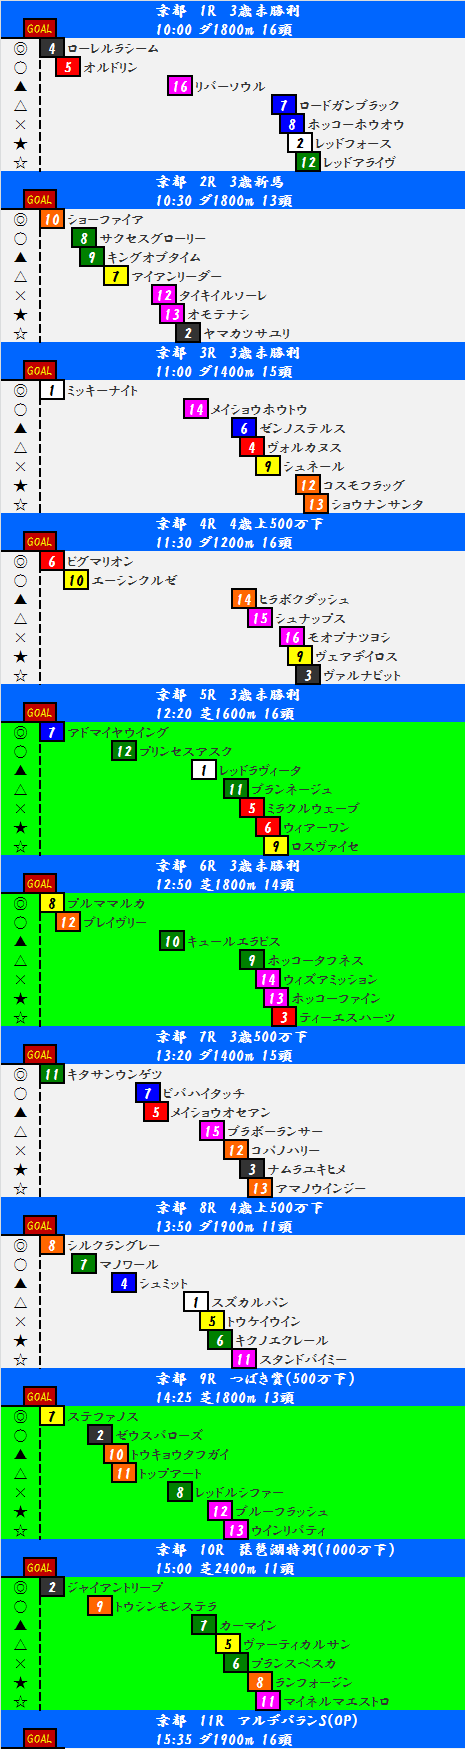 201402151.png